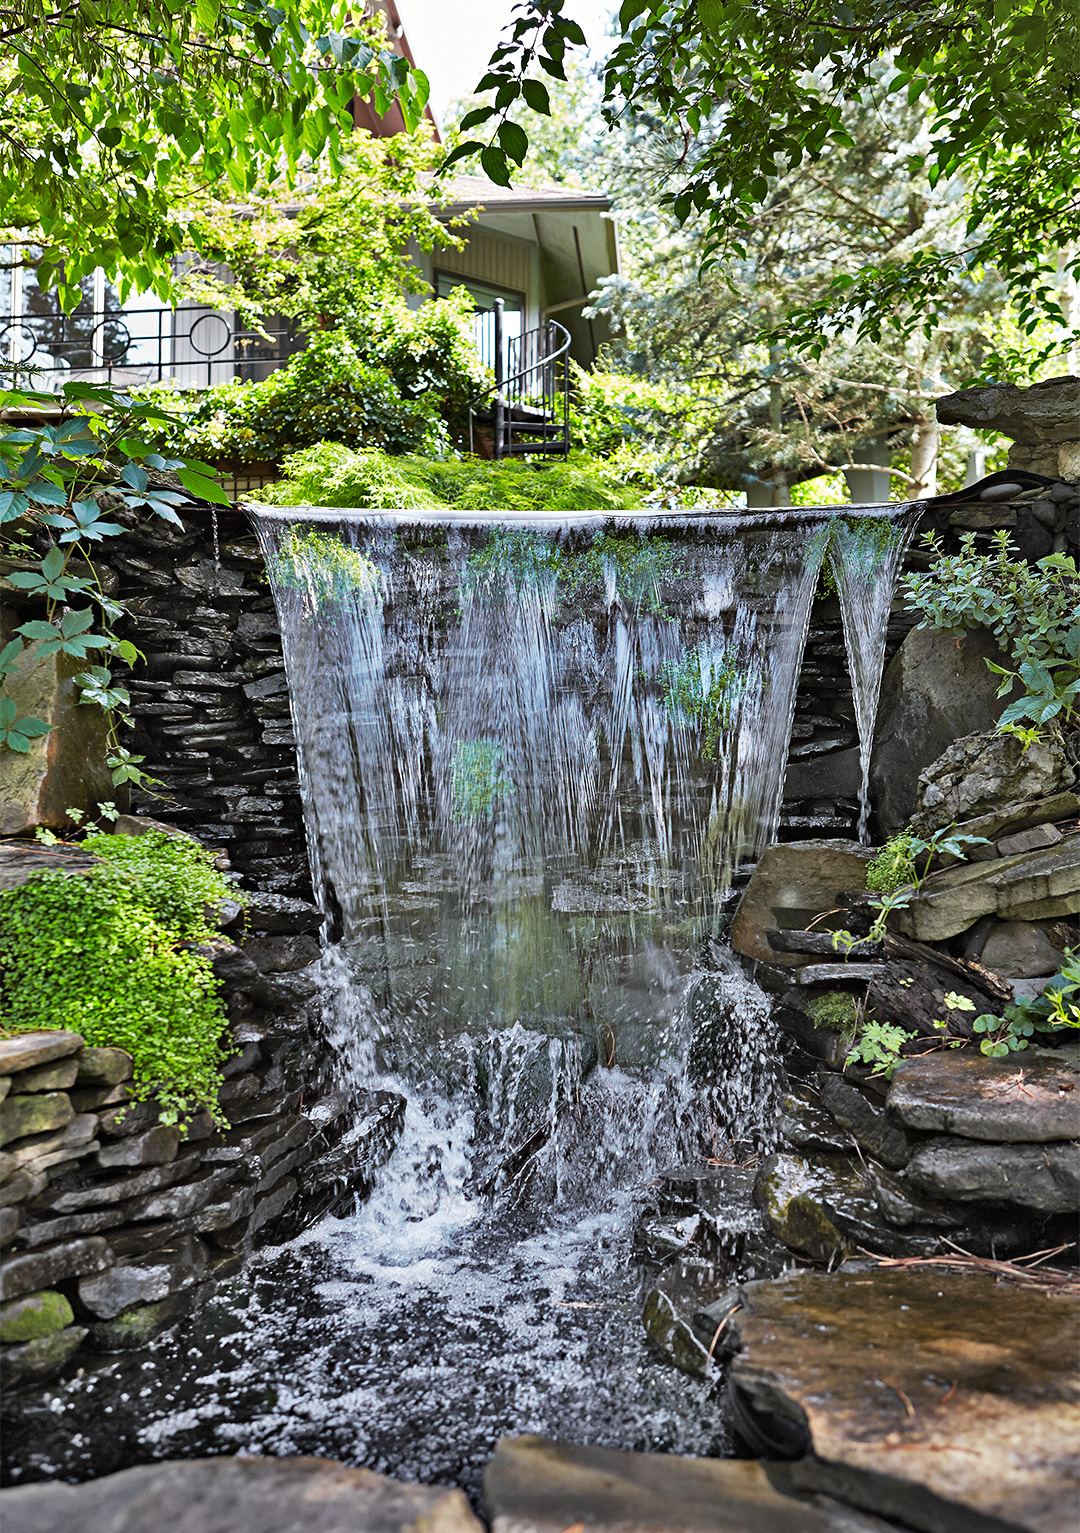 asian-style serenity garden waterfall feature